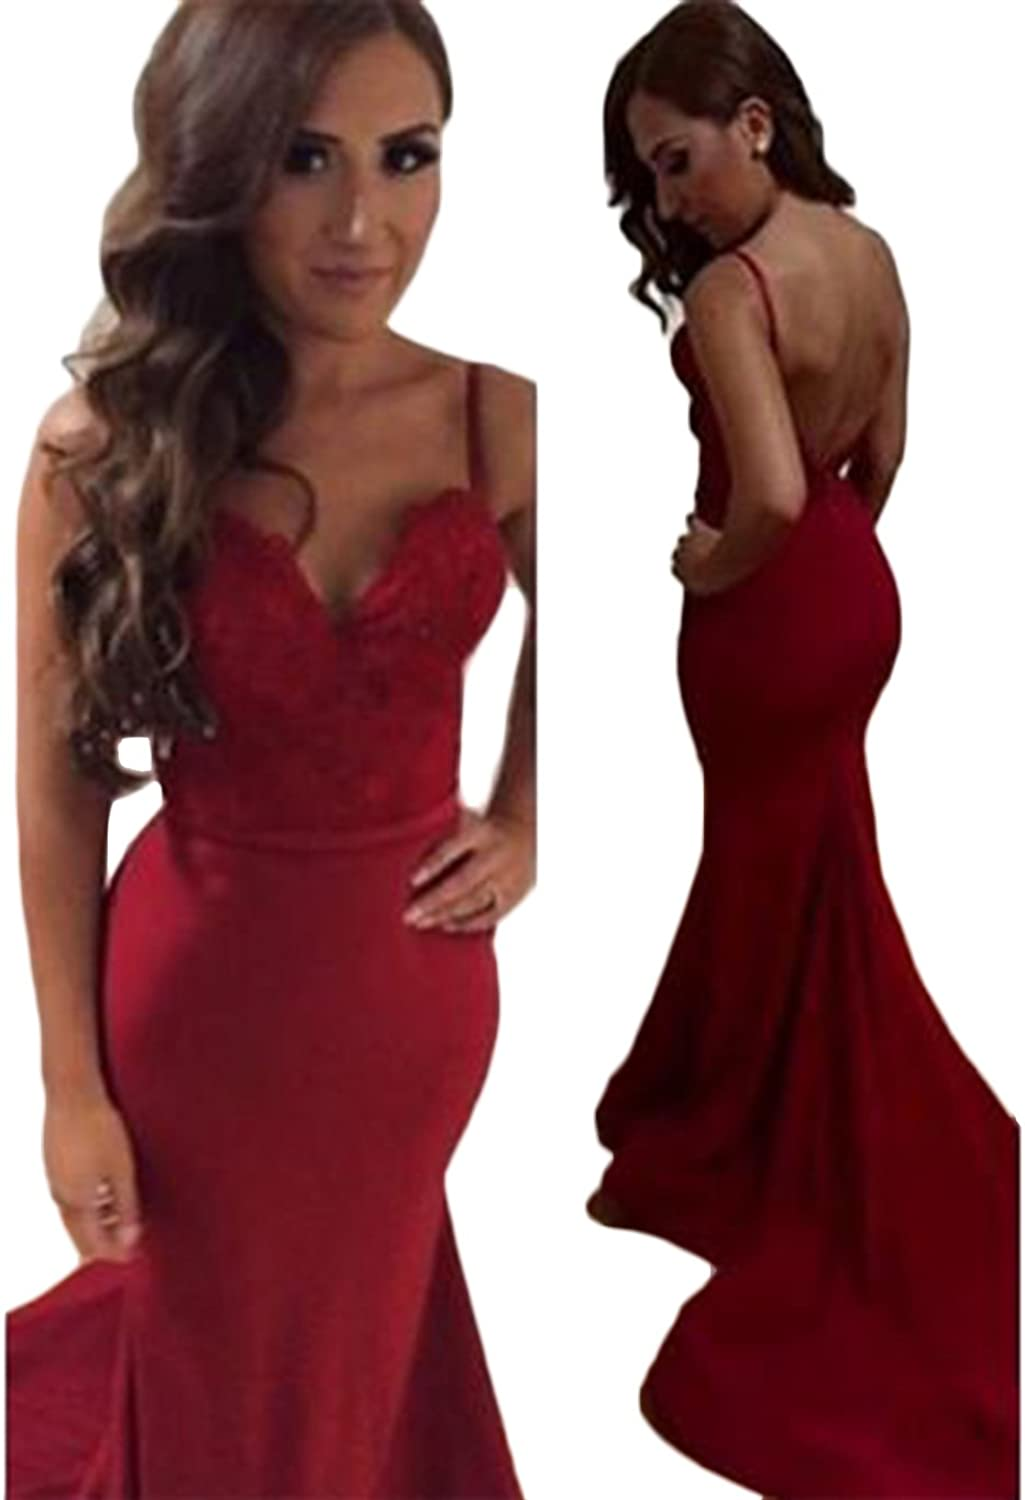 SDRESS Women's Lace Appliques Straps Backless Mermaid Christmas Prom Party Dress